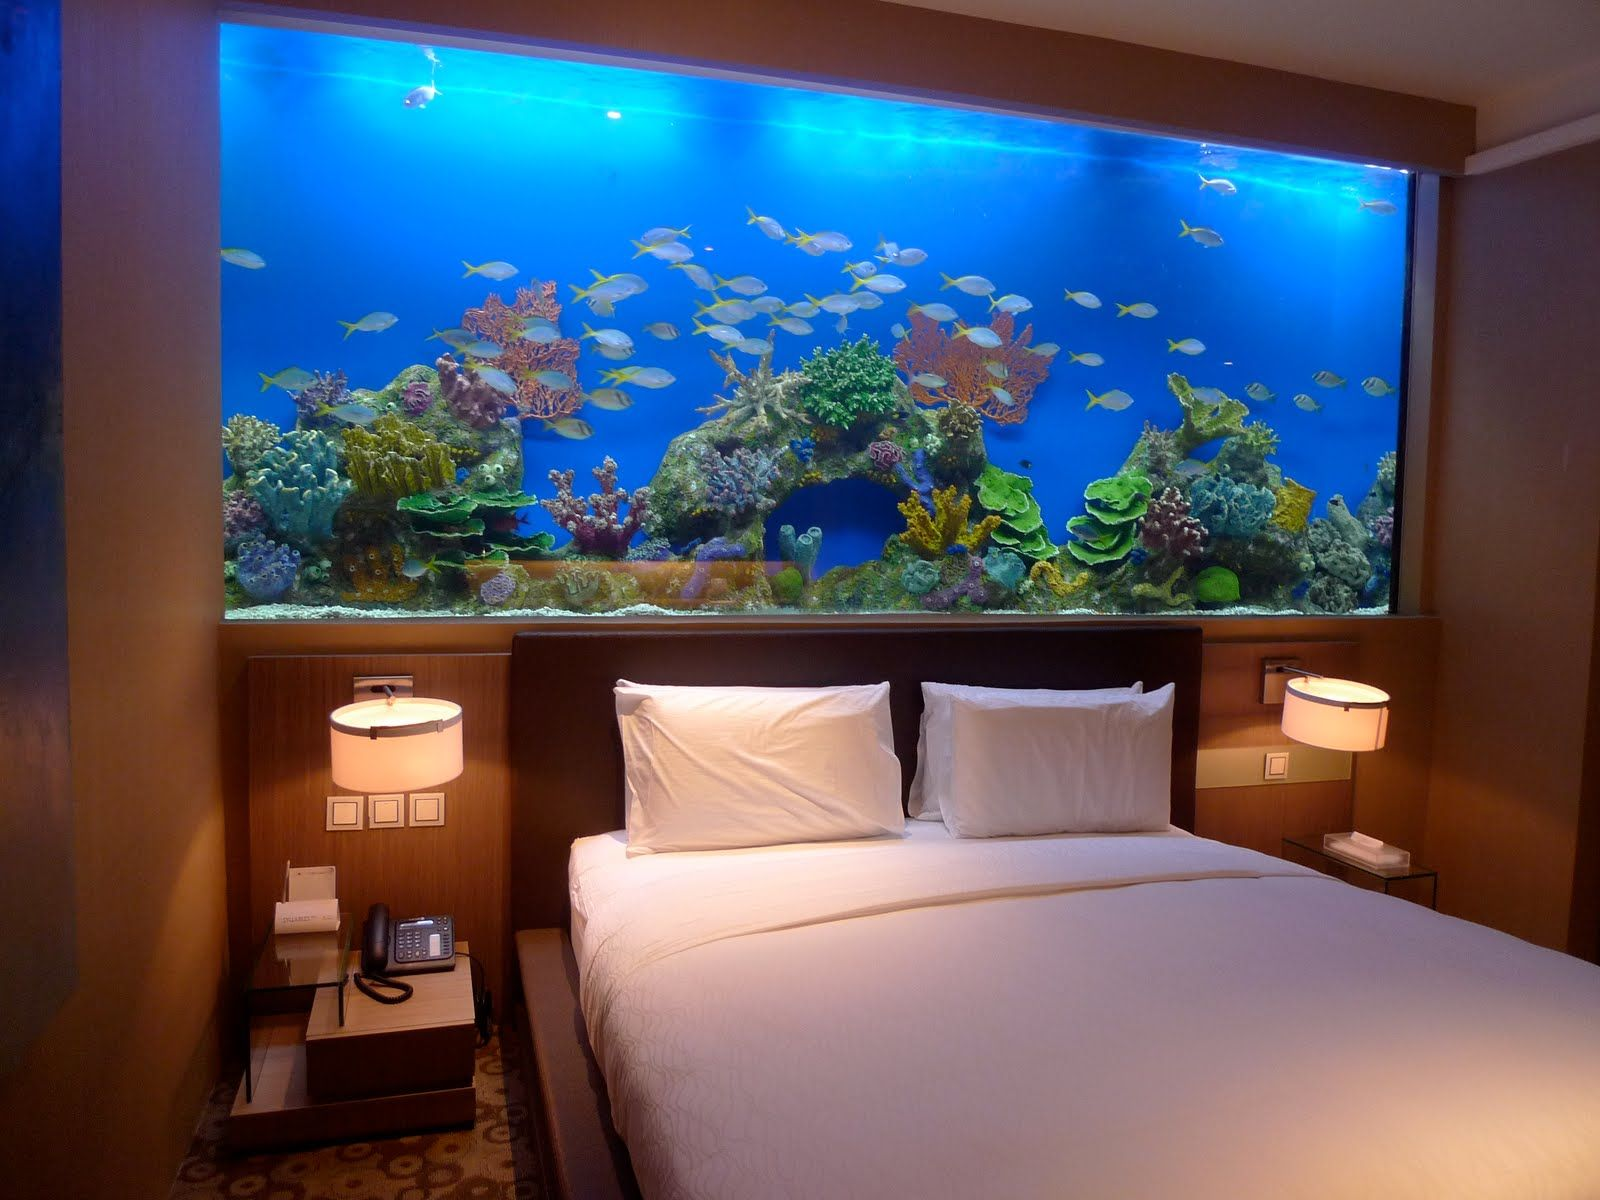 Aquarium Im Schlafzimmer 7 Design Ideas For Teens Bedrooms Best Designs Wall